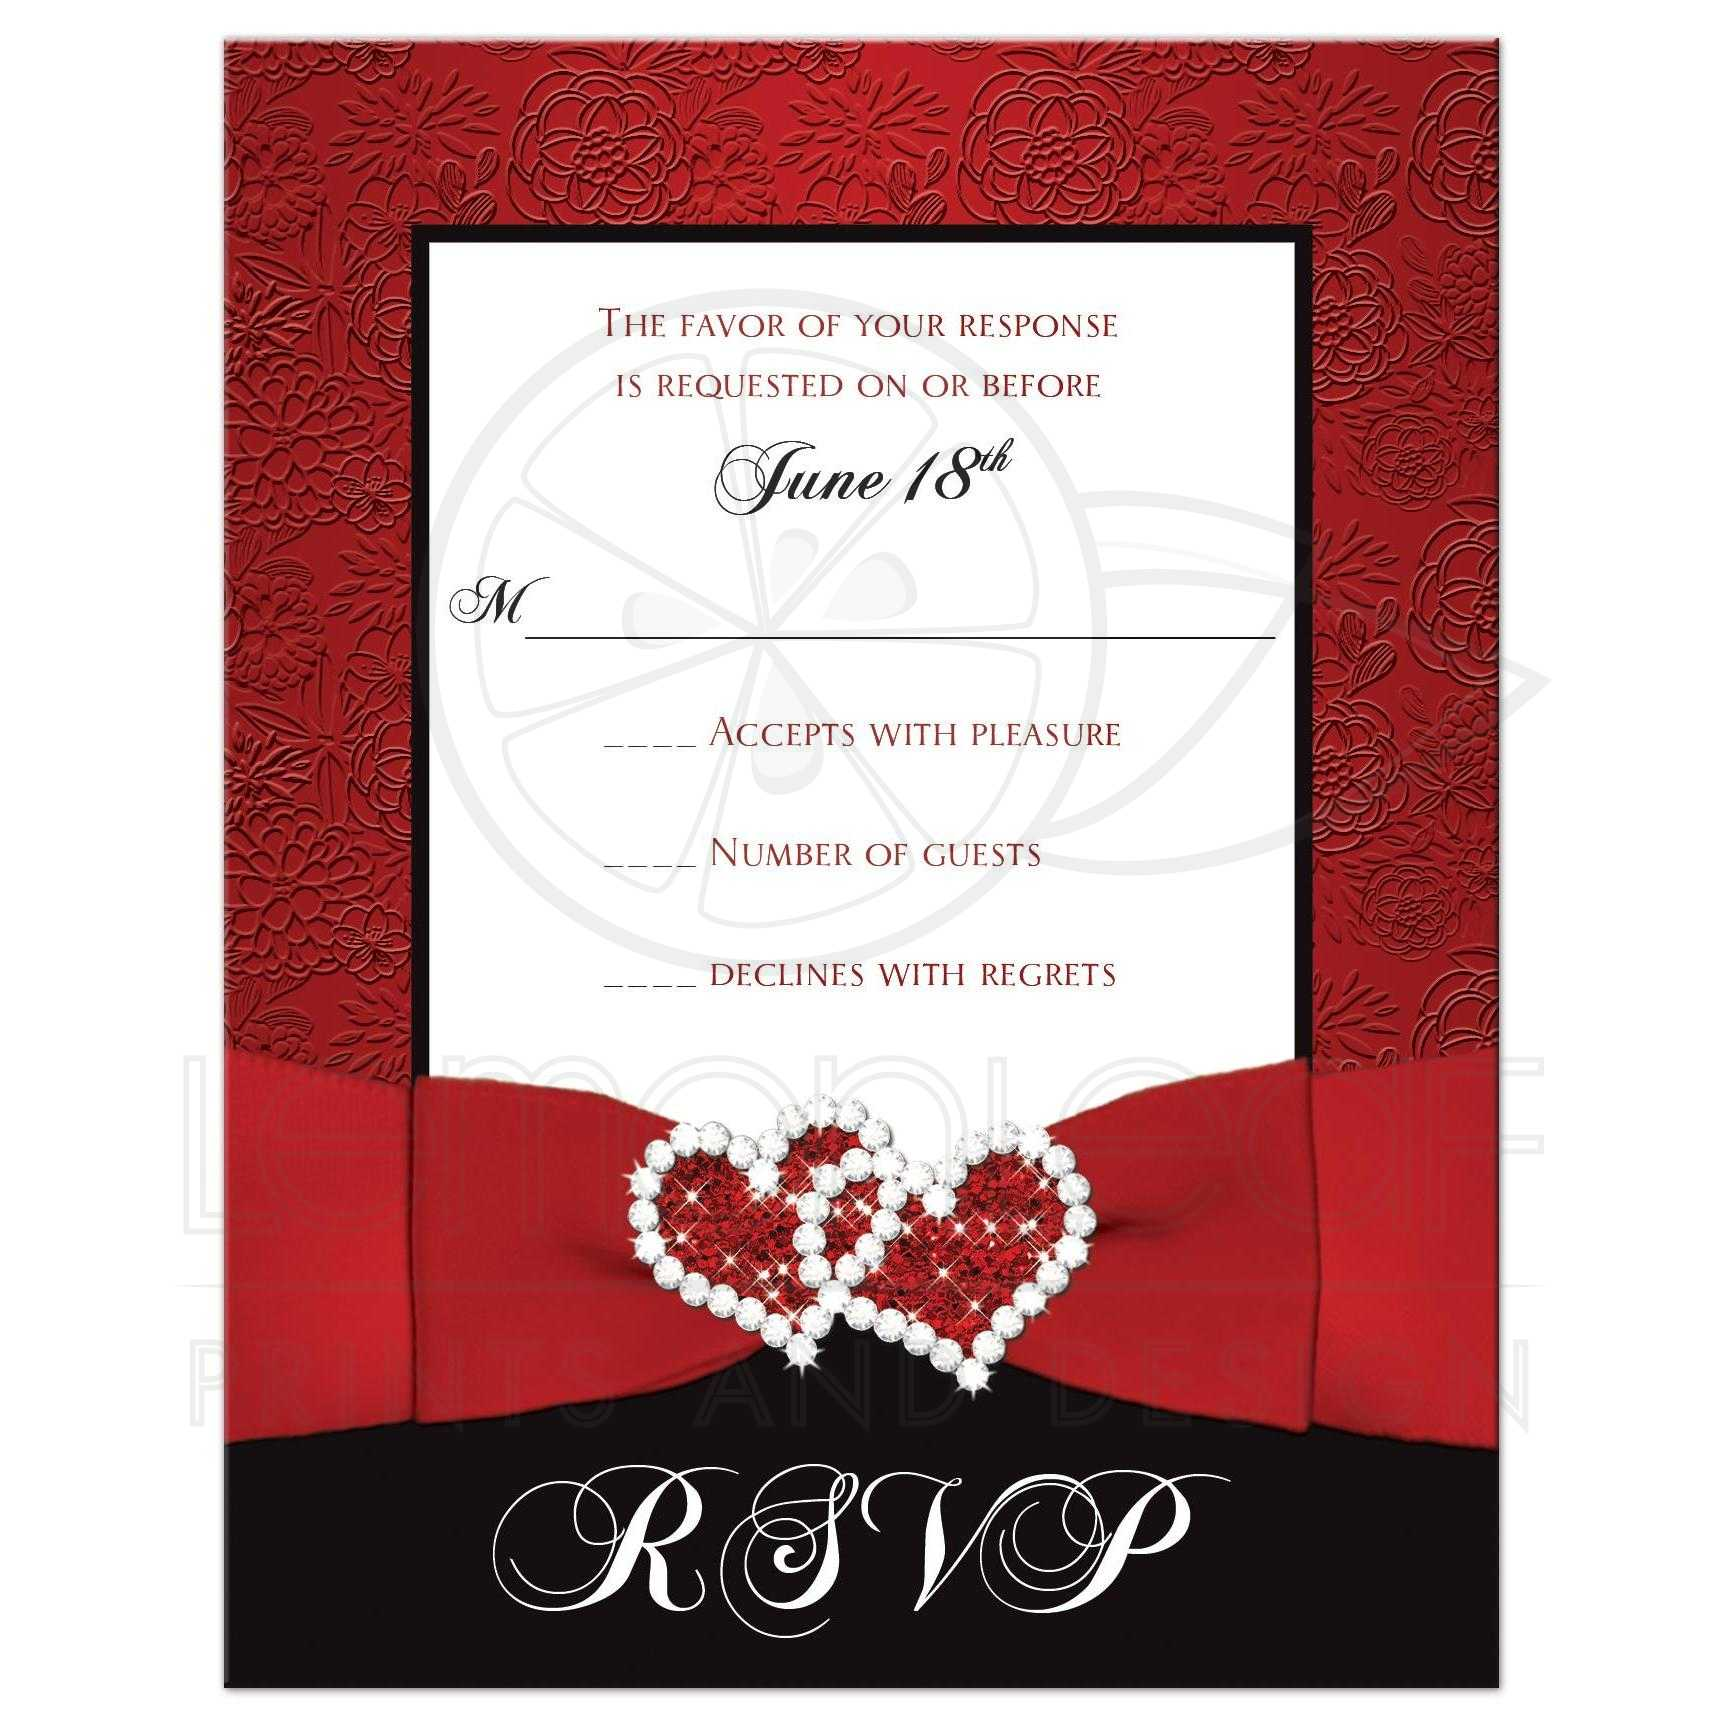 Wedding RSVP Card | Red, Black, White Floral | Printed Ribbon